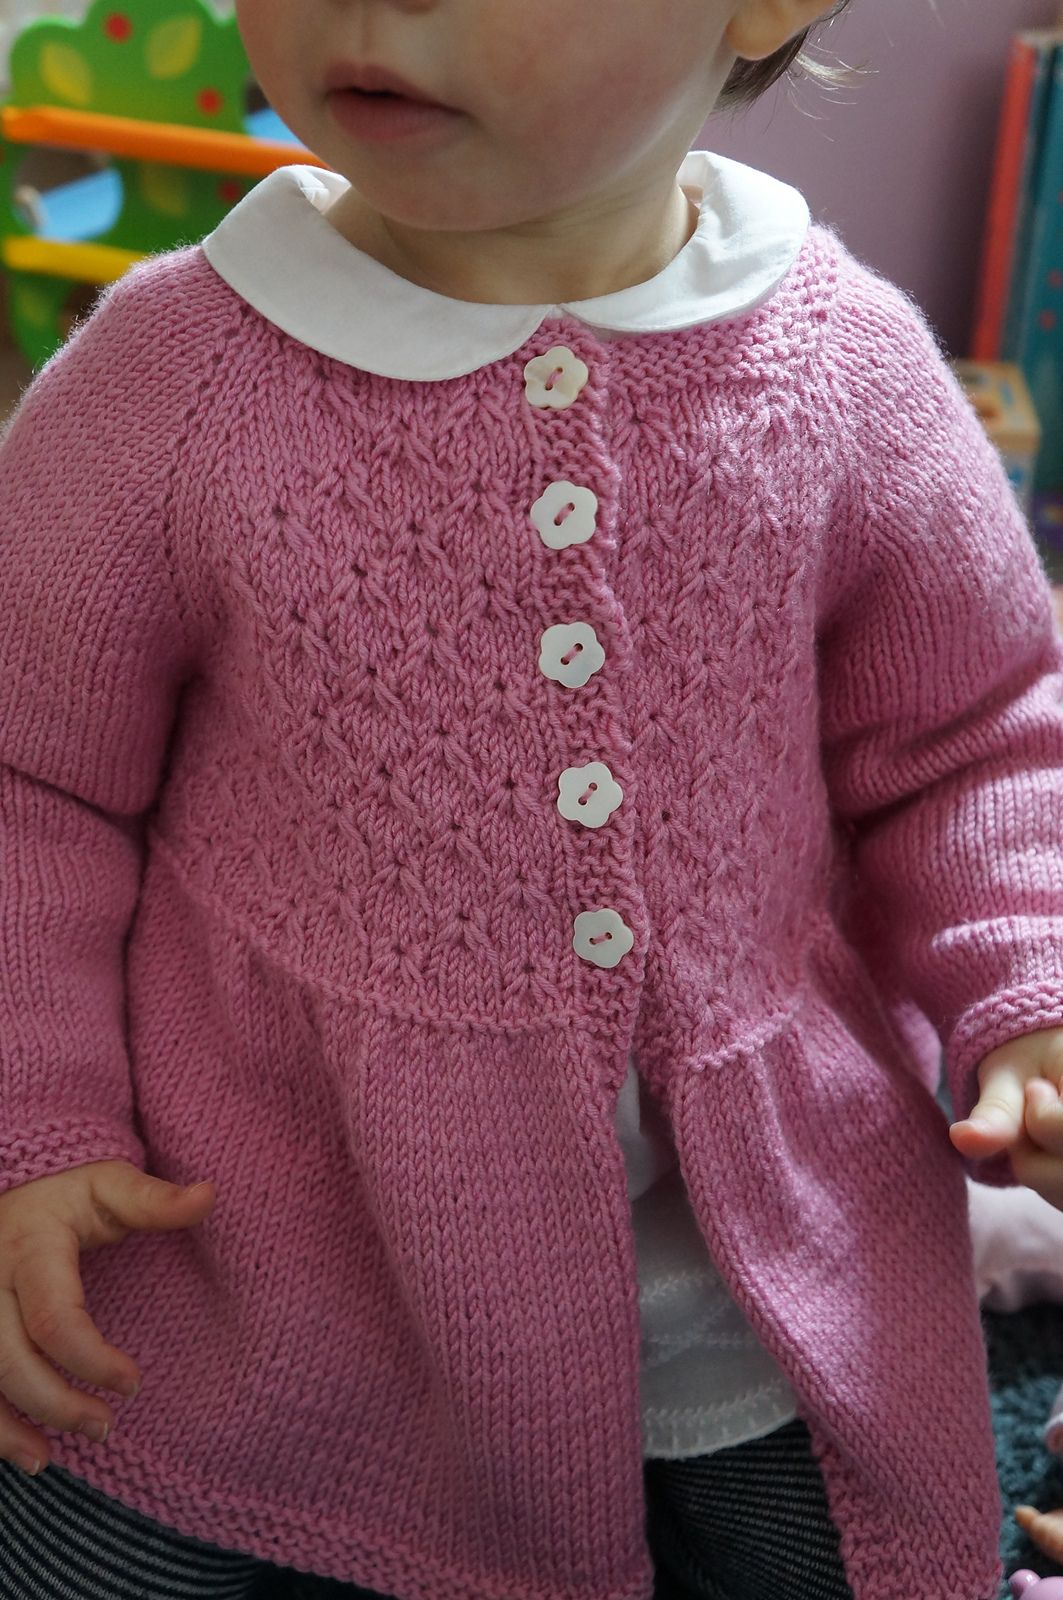 Alouette pattern by Lisa Chemery | Jacken, Babys und Stricken